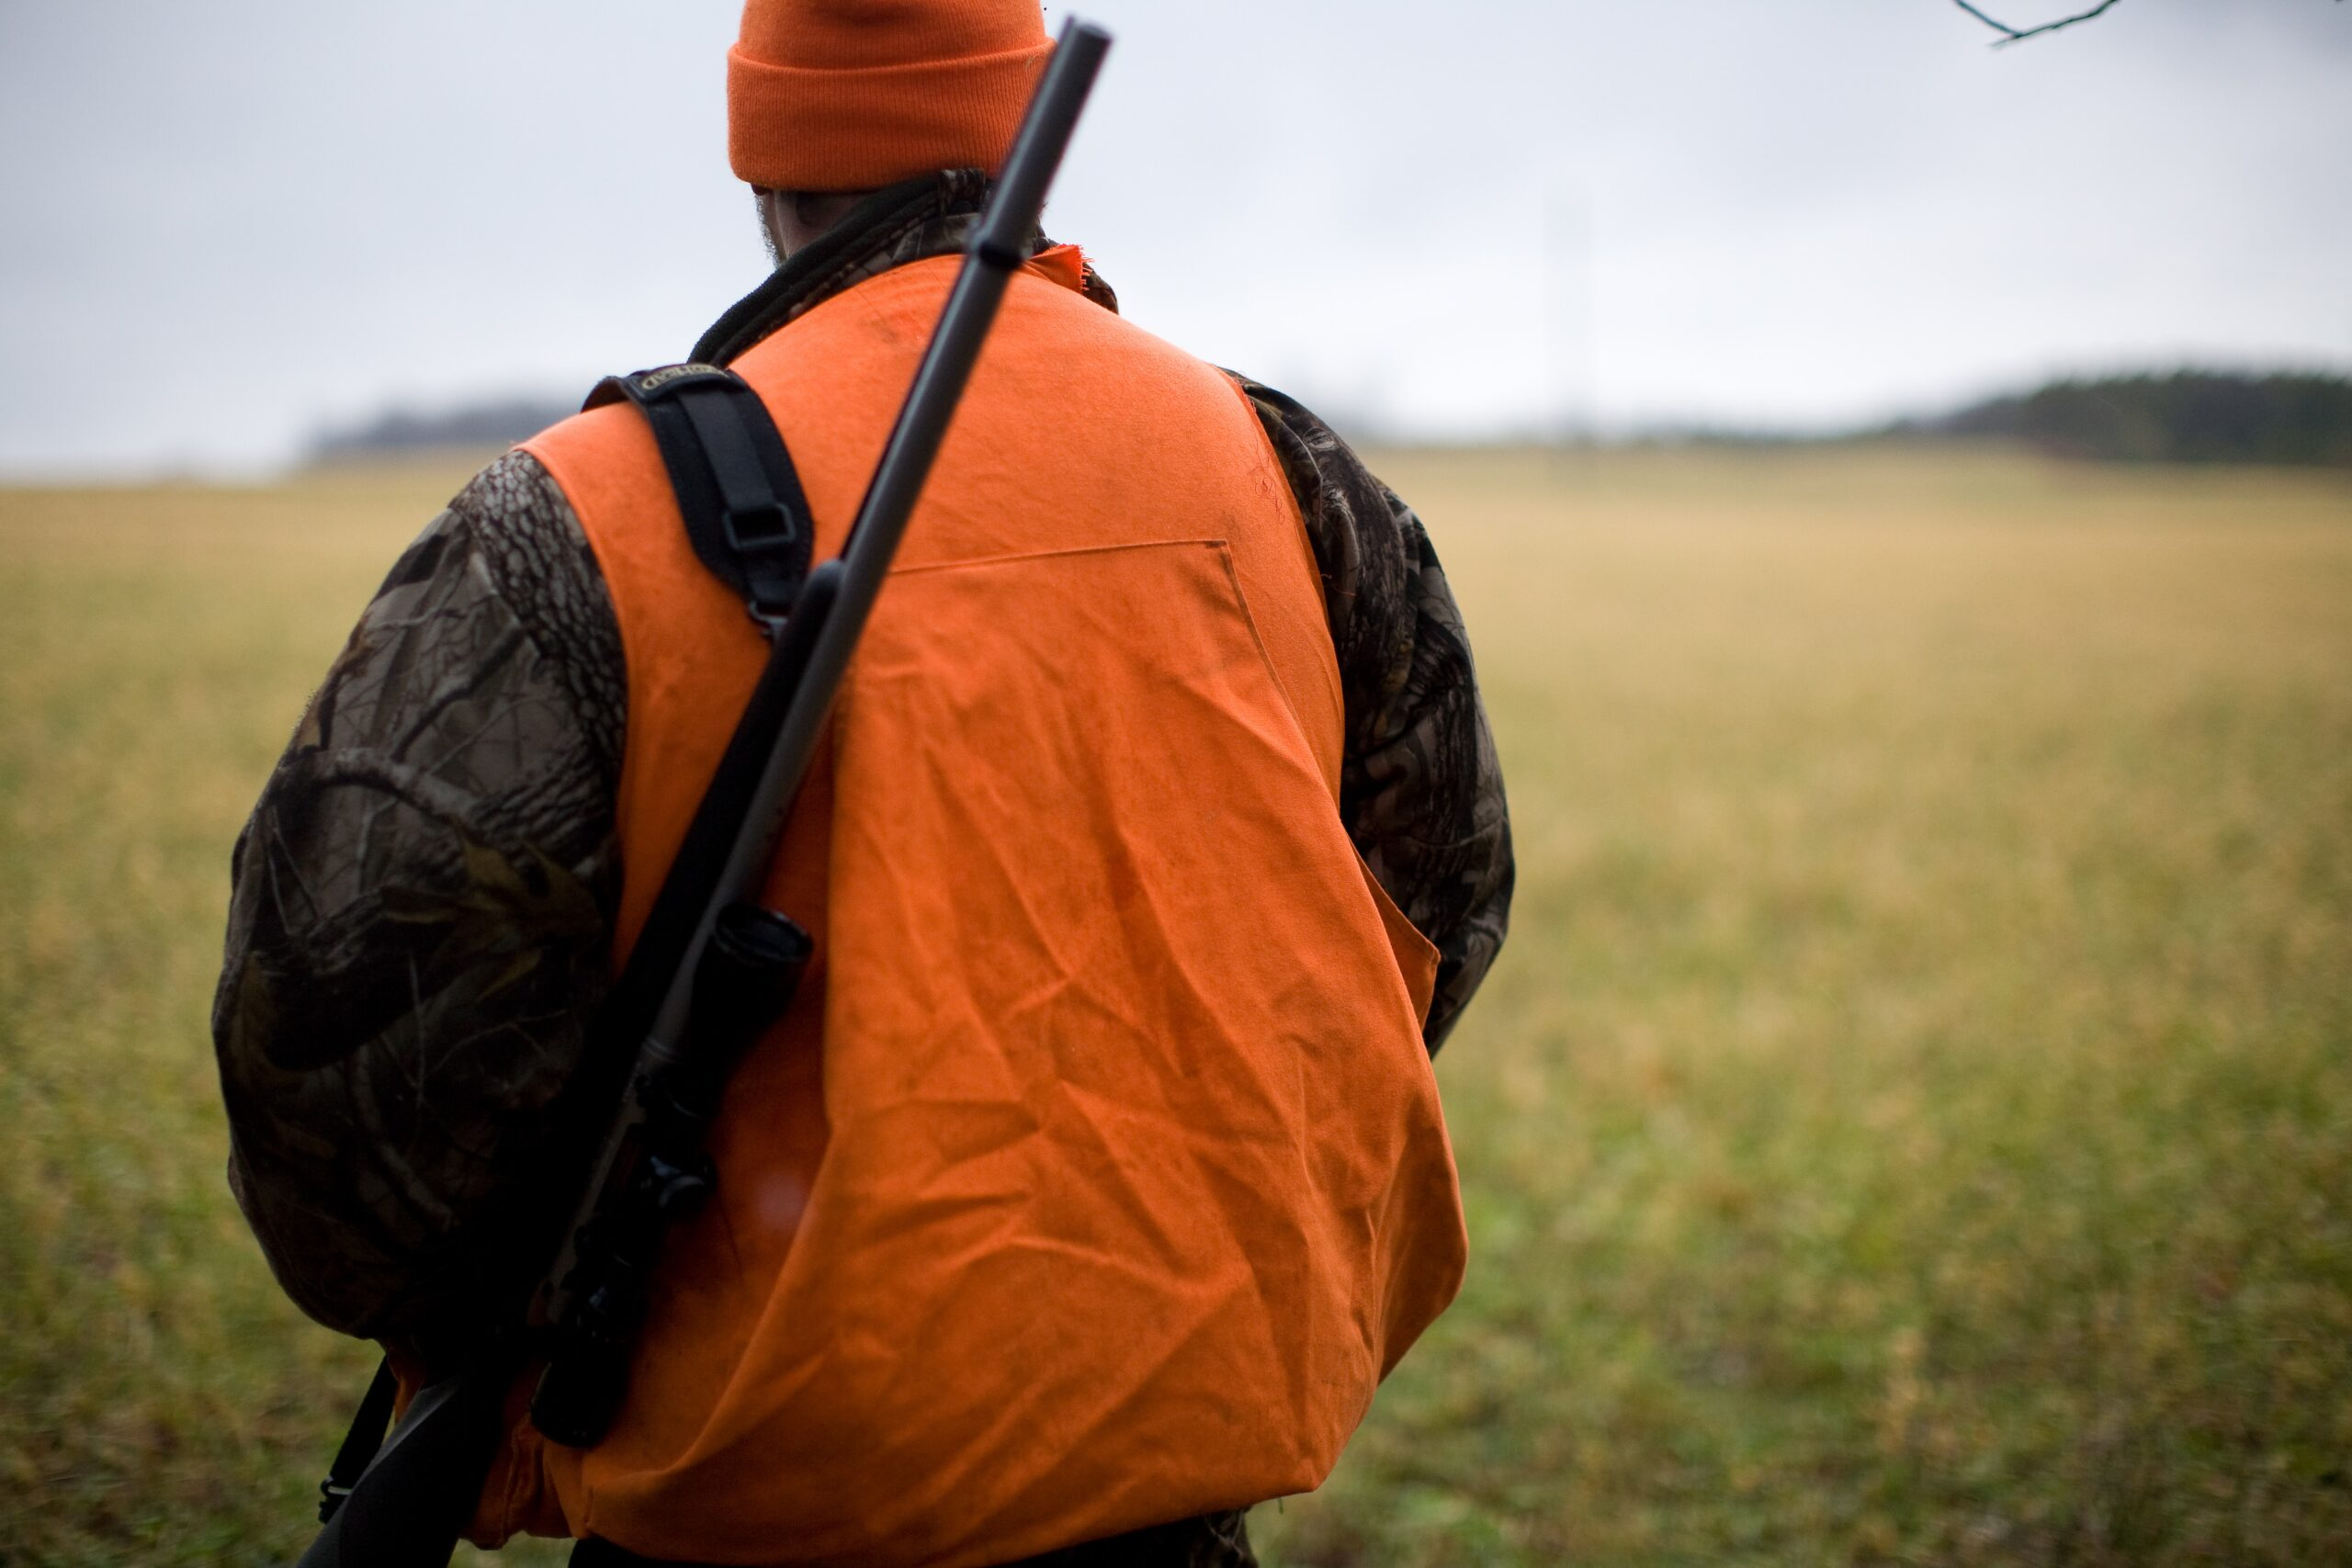 landpass finding private land to hunt on